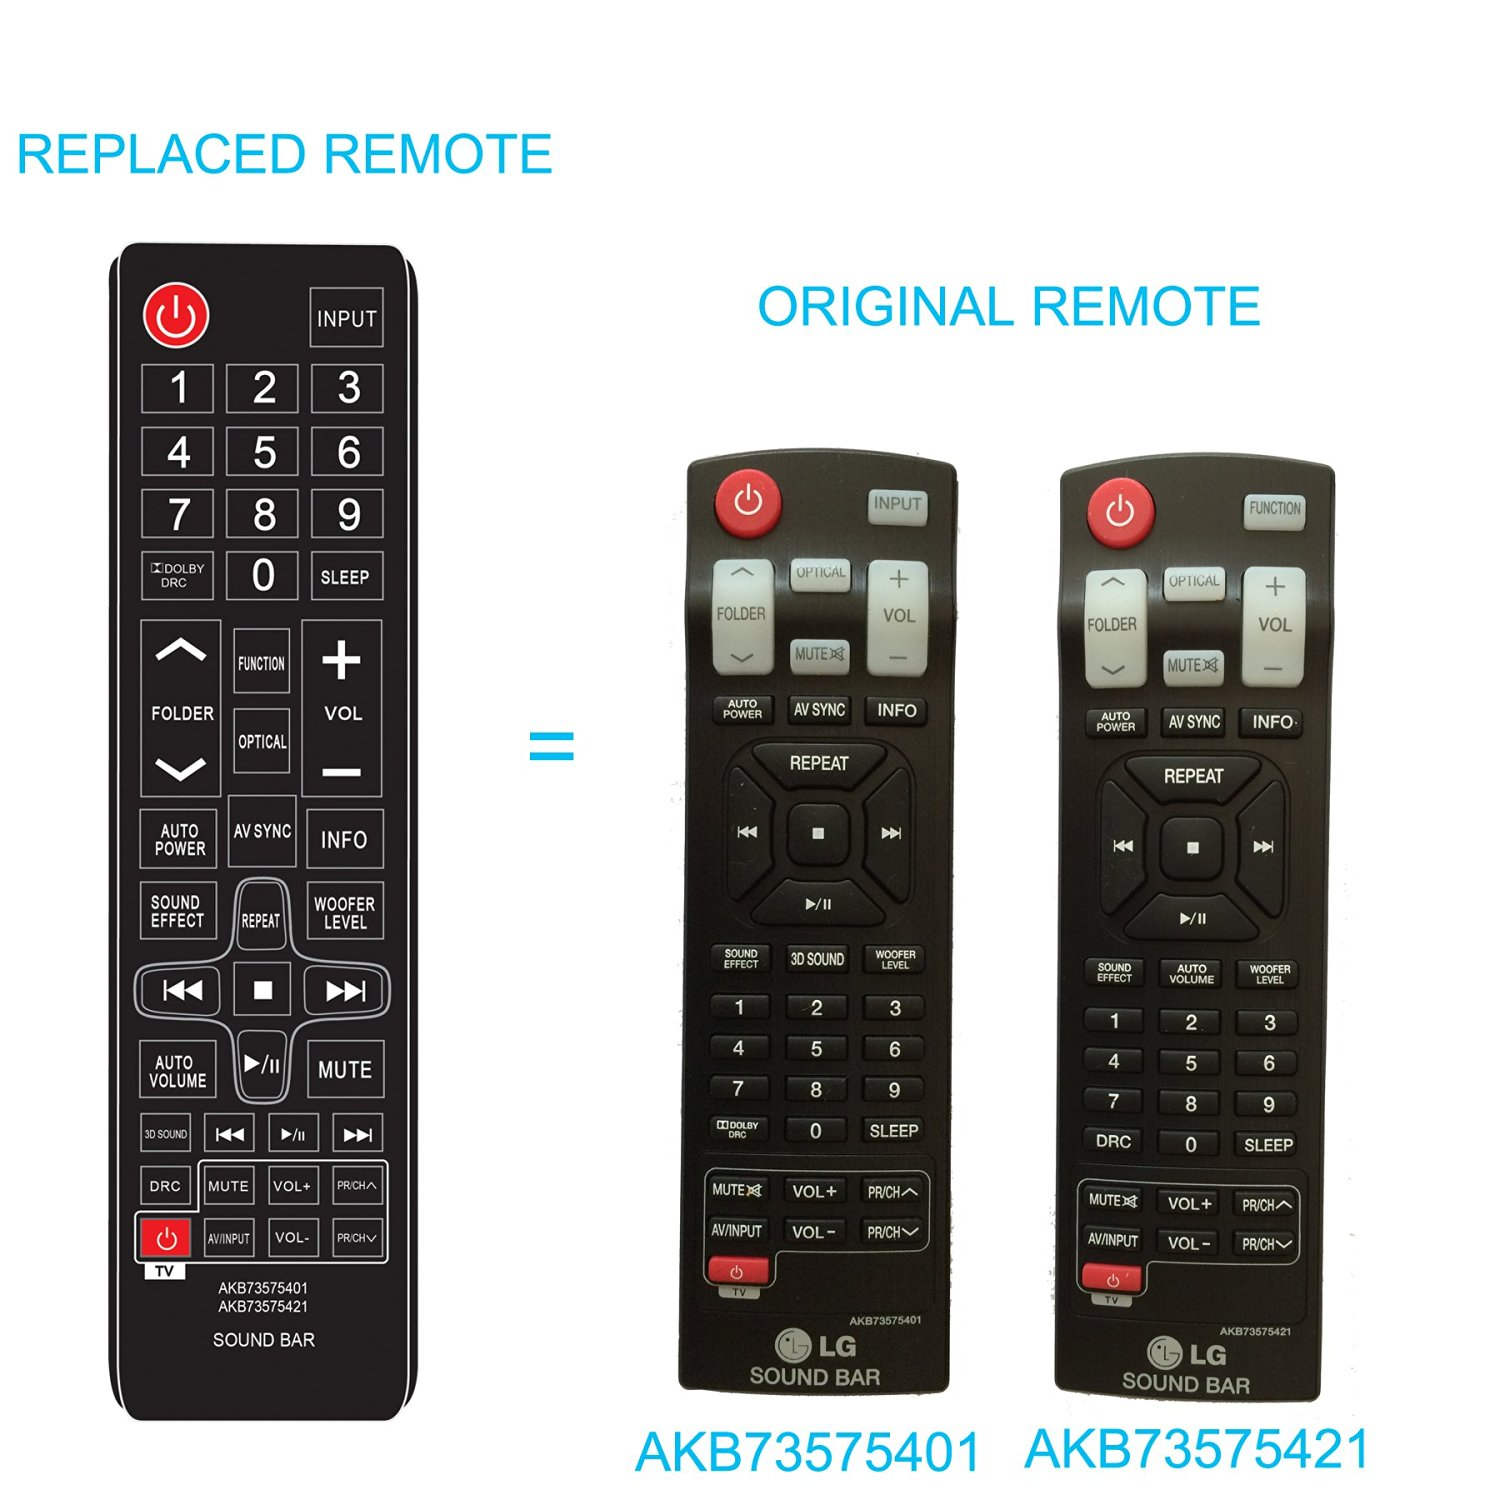 Buy New LG Sound bar Replaced Remote AKB73575401 AKB73575421 fit for